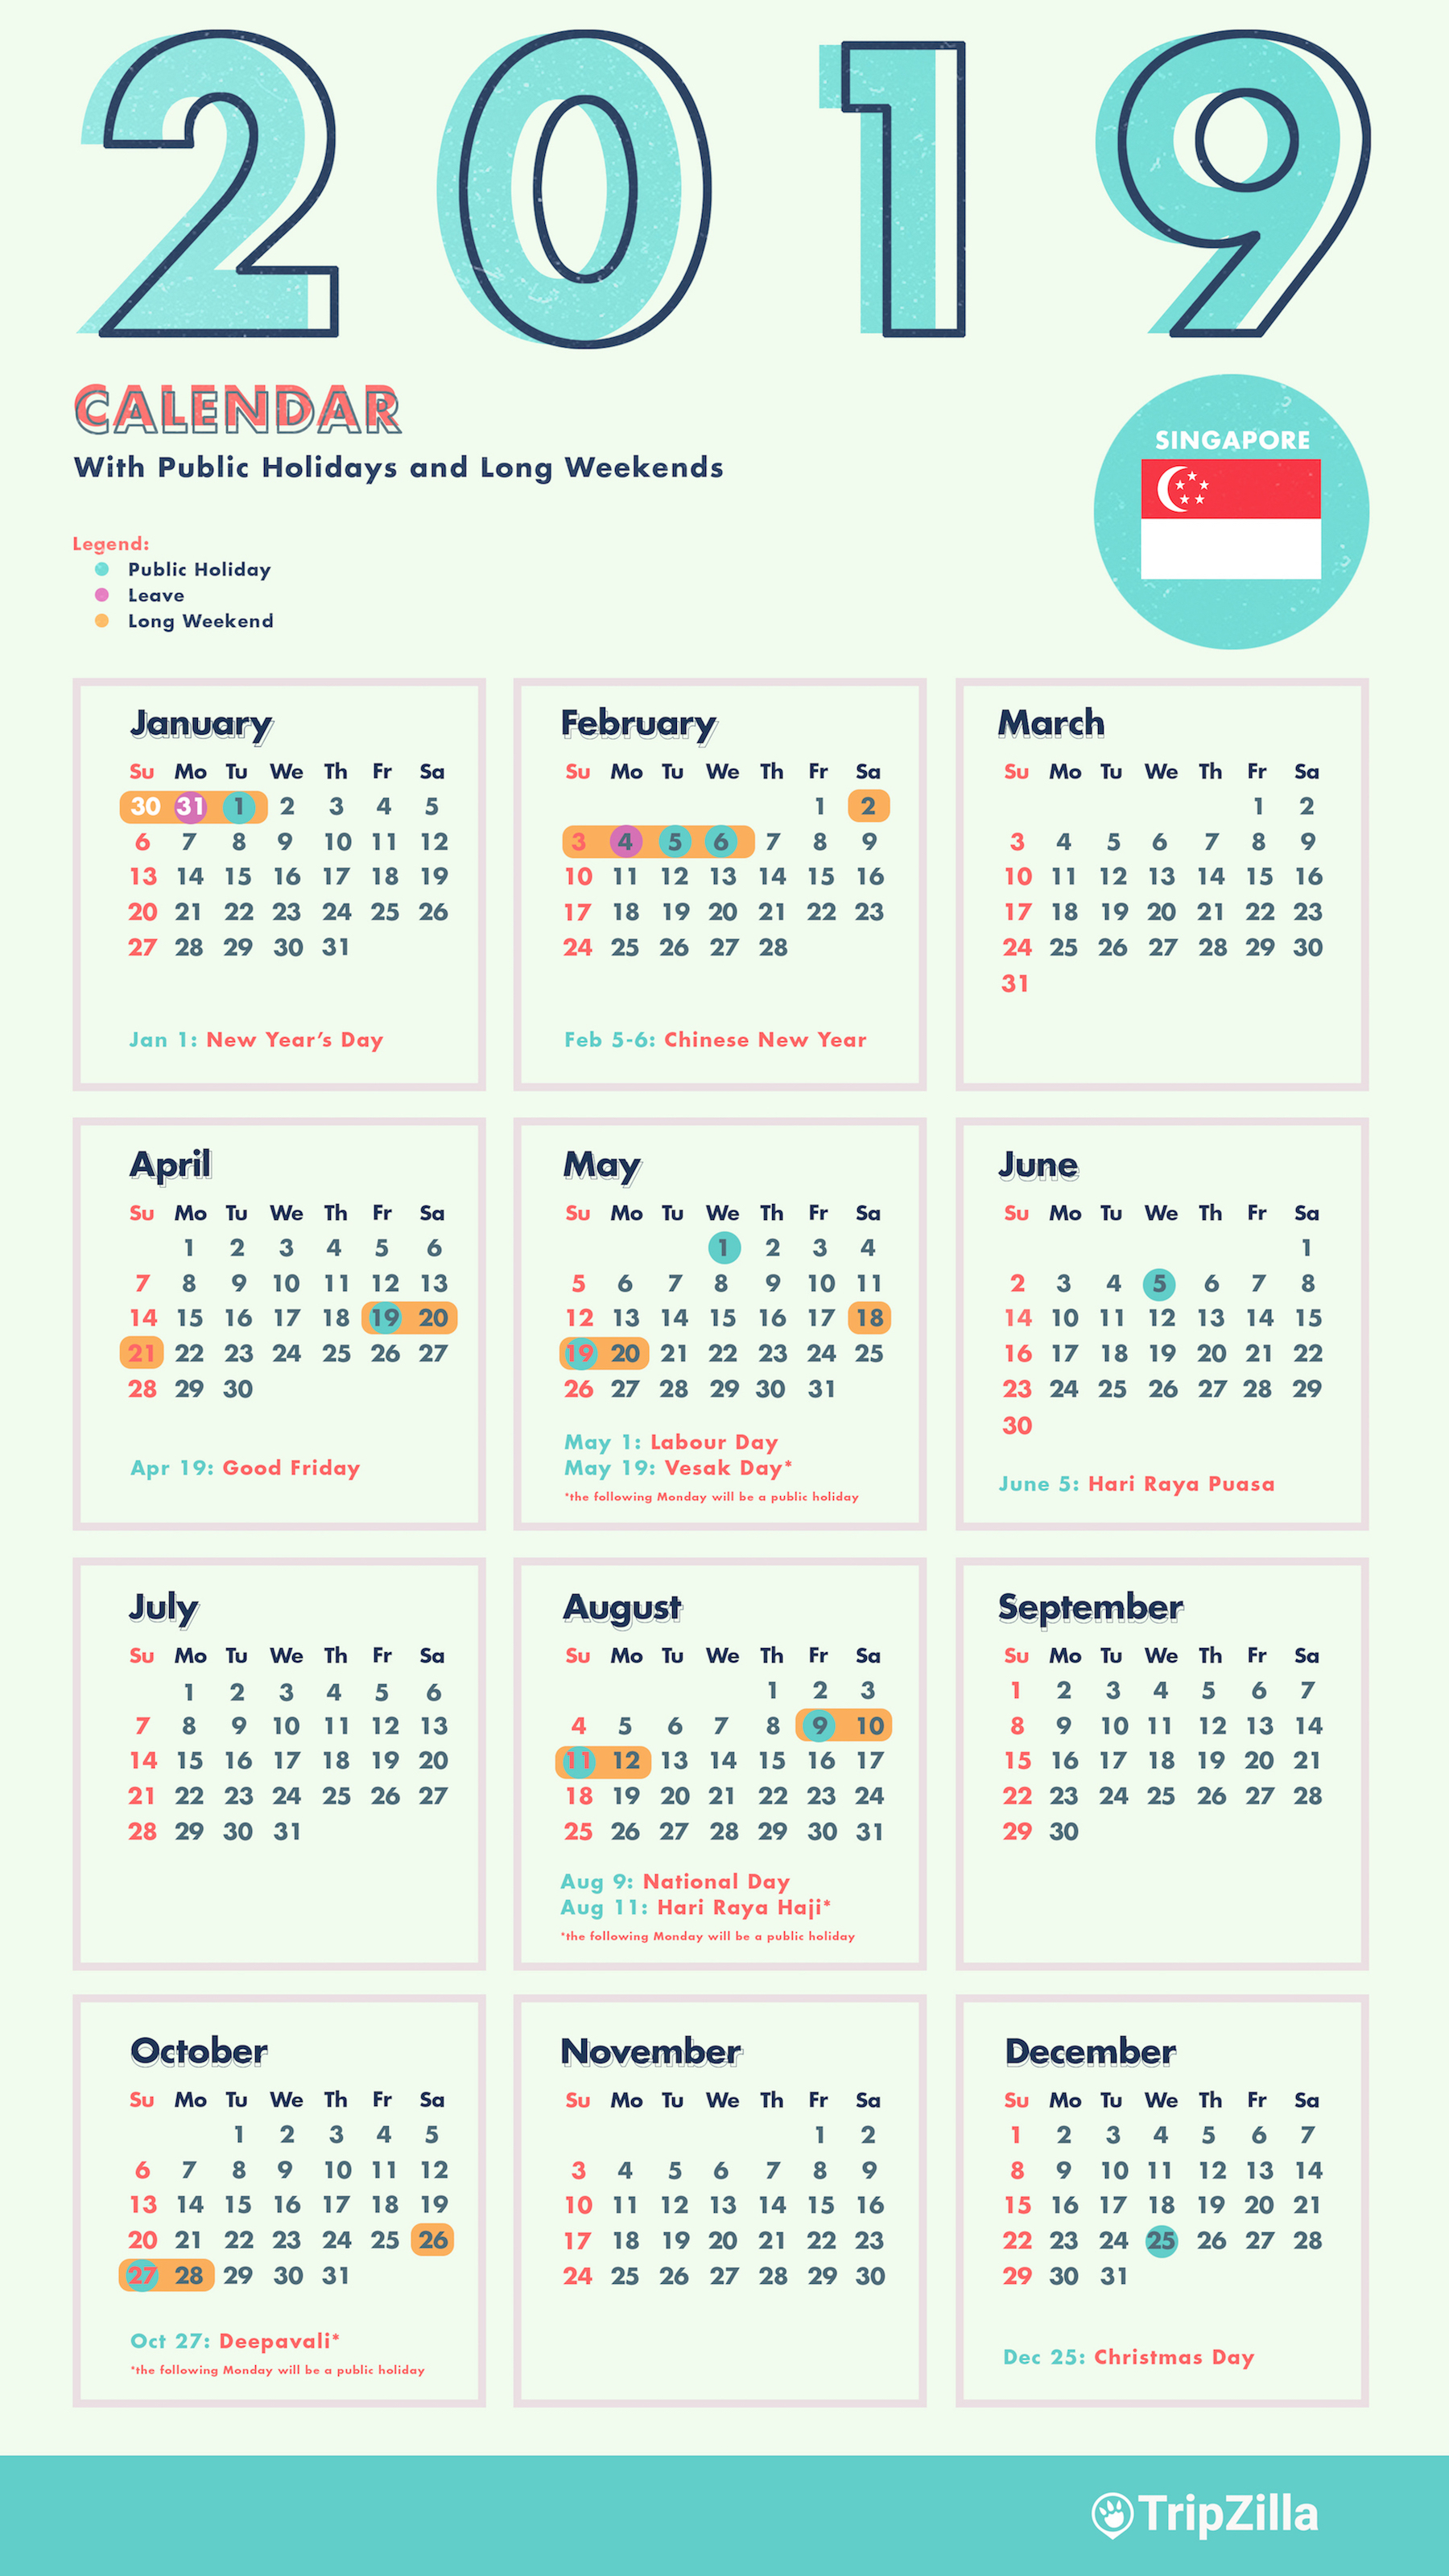 singapore 2019 public holidays and long weekends calendar new years